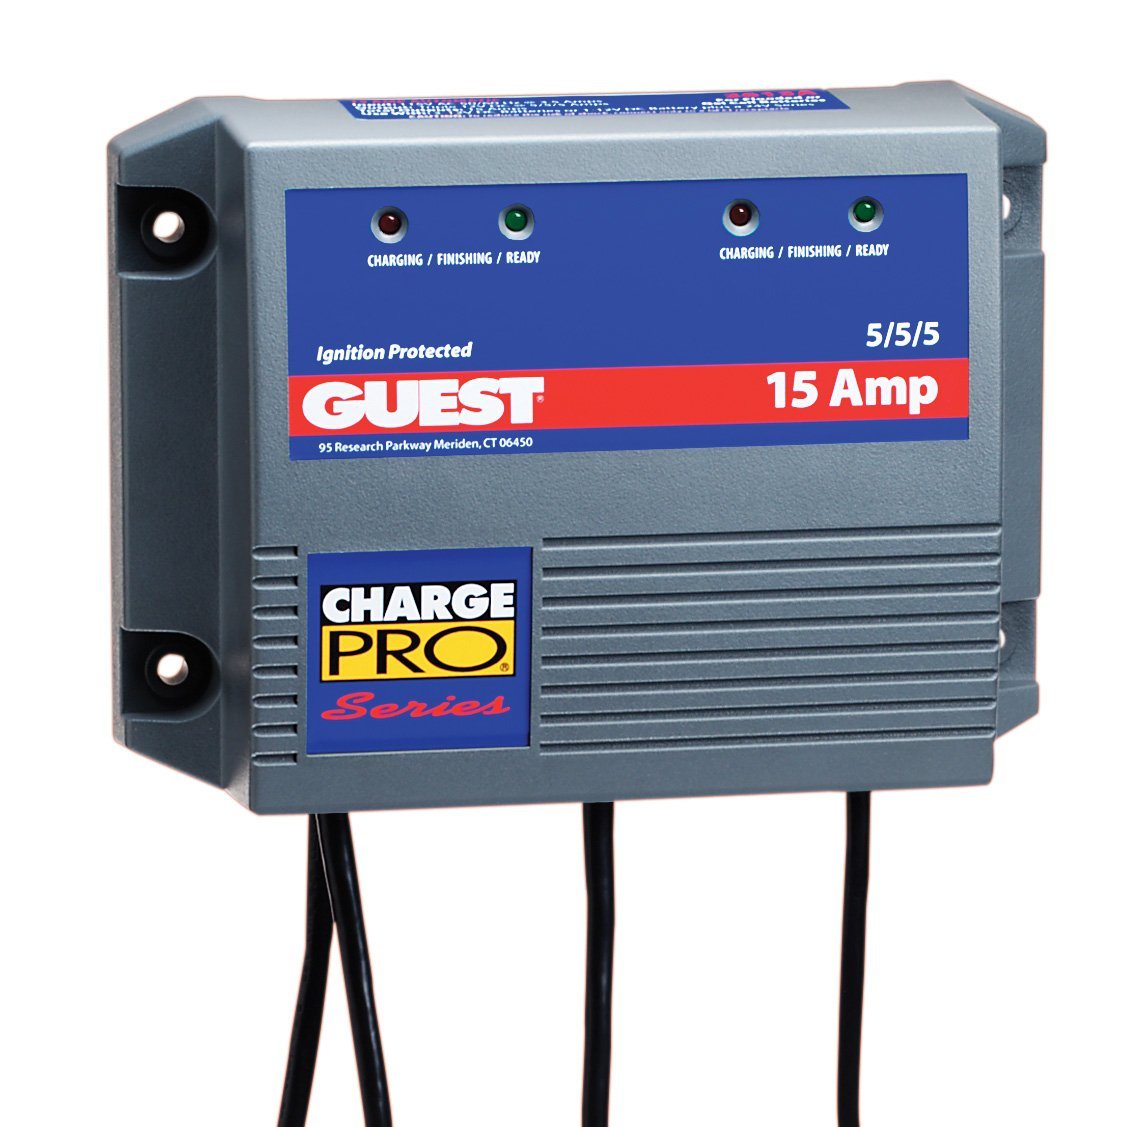 small resolution of 15 amp triple output charge pro battery charger 15a 5 5 5 12 24 24 volt trolling motor diagram 3 bank charger wiring diagram